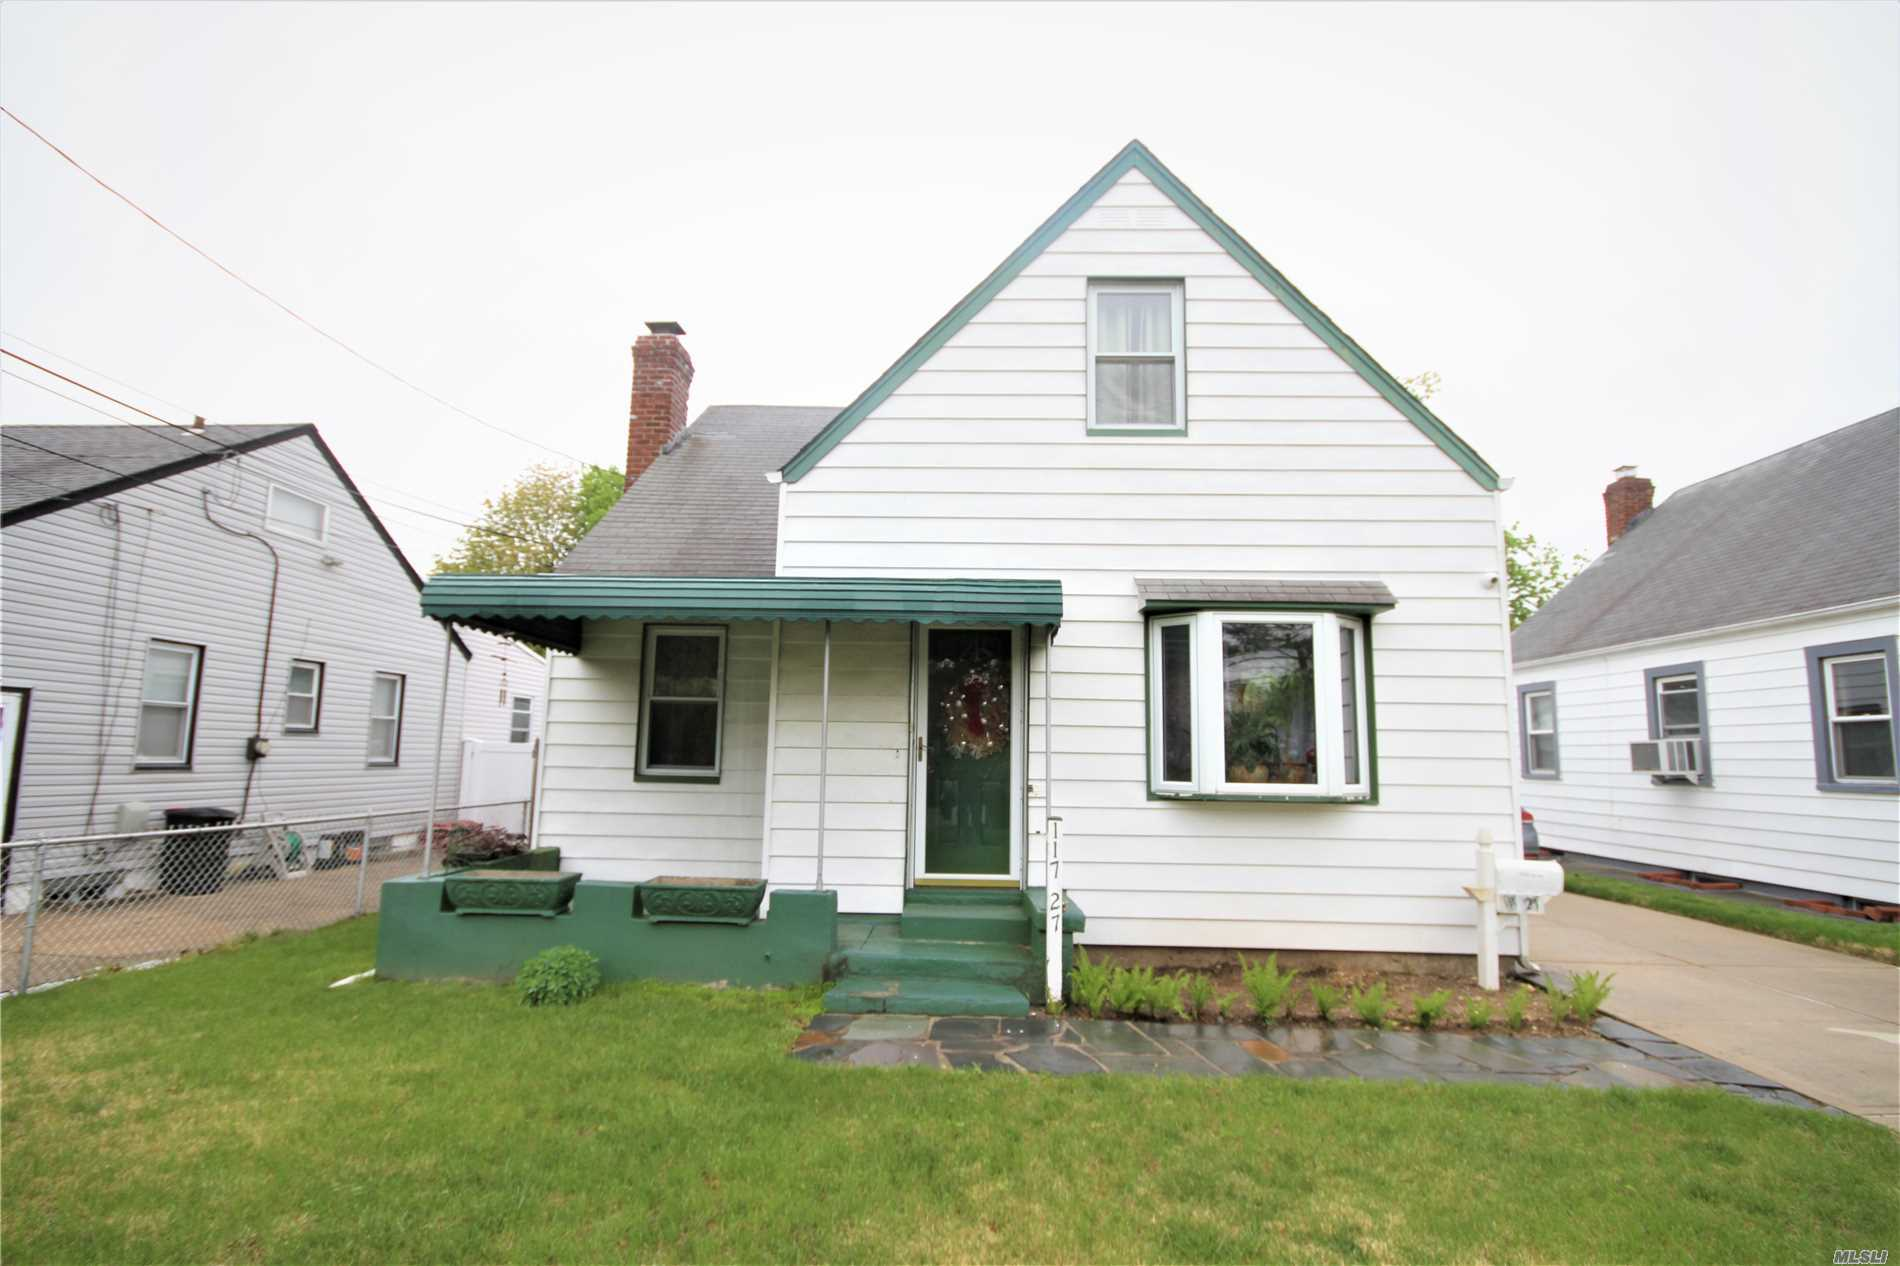 Well maintained Cape on a tree-lined one way street in a convenient Elmont location. Featuring a full finished basement, private backyard and detached 2-car garage. Easy access to the Southern State and Cross Island parkways. Near mass transit Q4 bus, X64 and shopping on Linden Blvd.